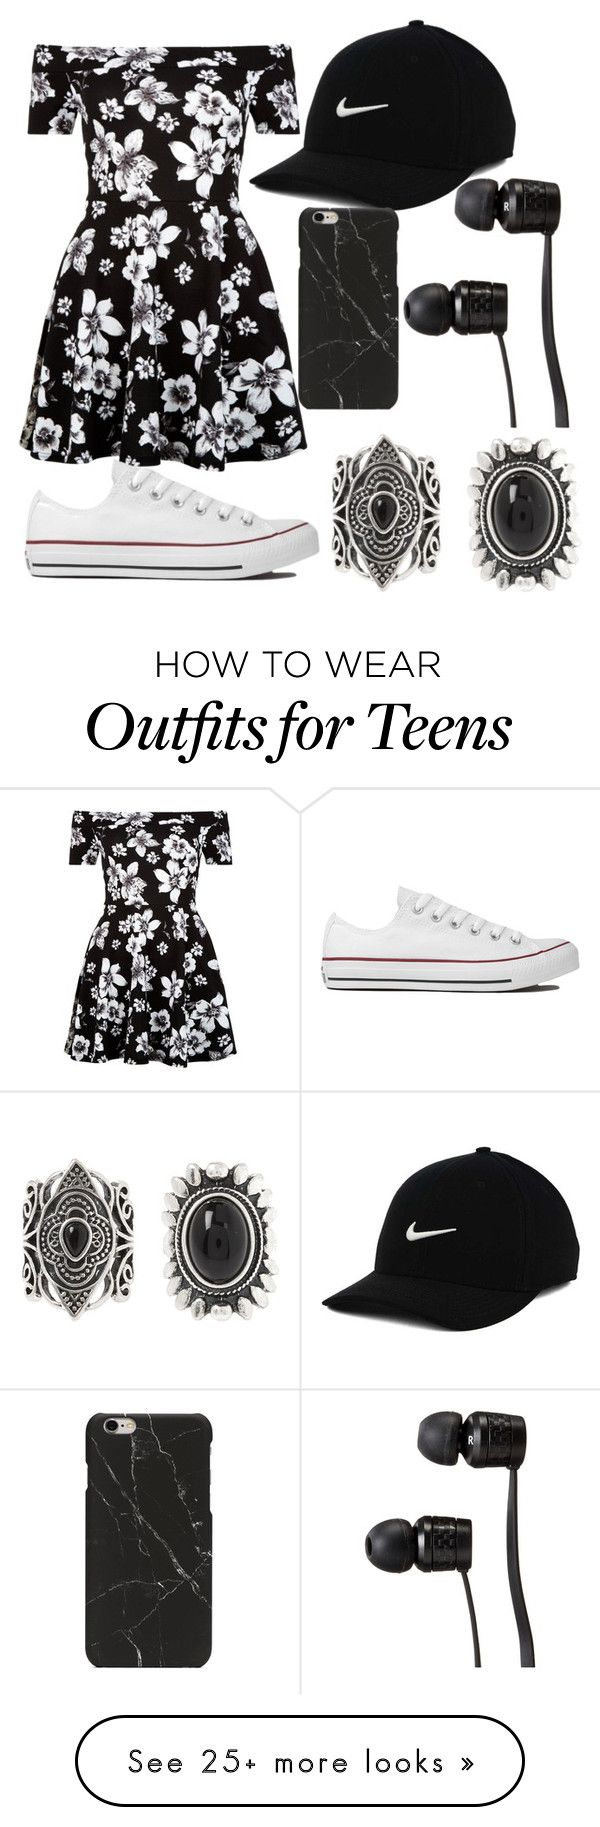 Untitled #679 by mriss-abbrie on Polyvore featuring New Look, Converse, NIKE and Vans